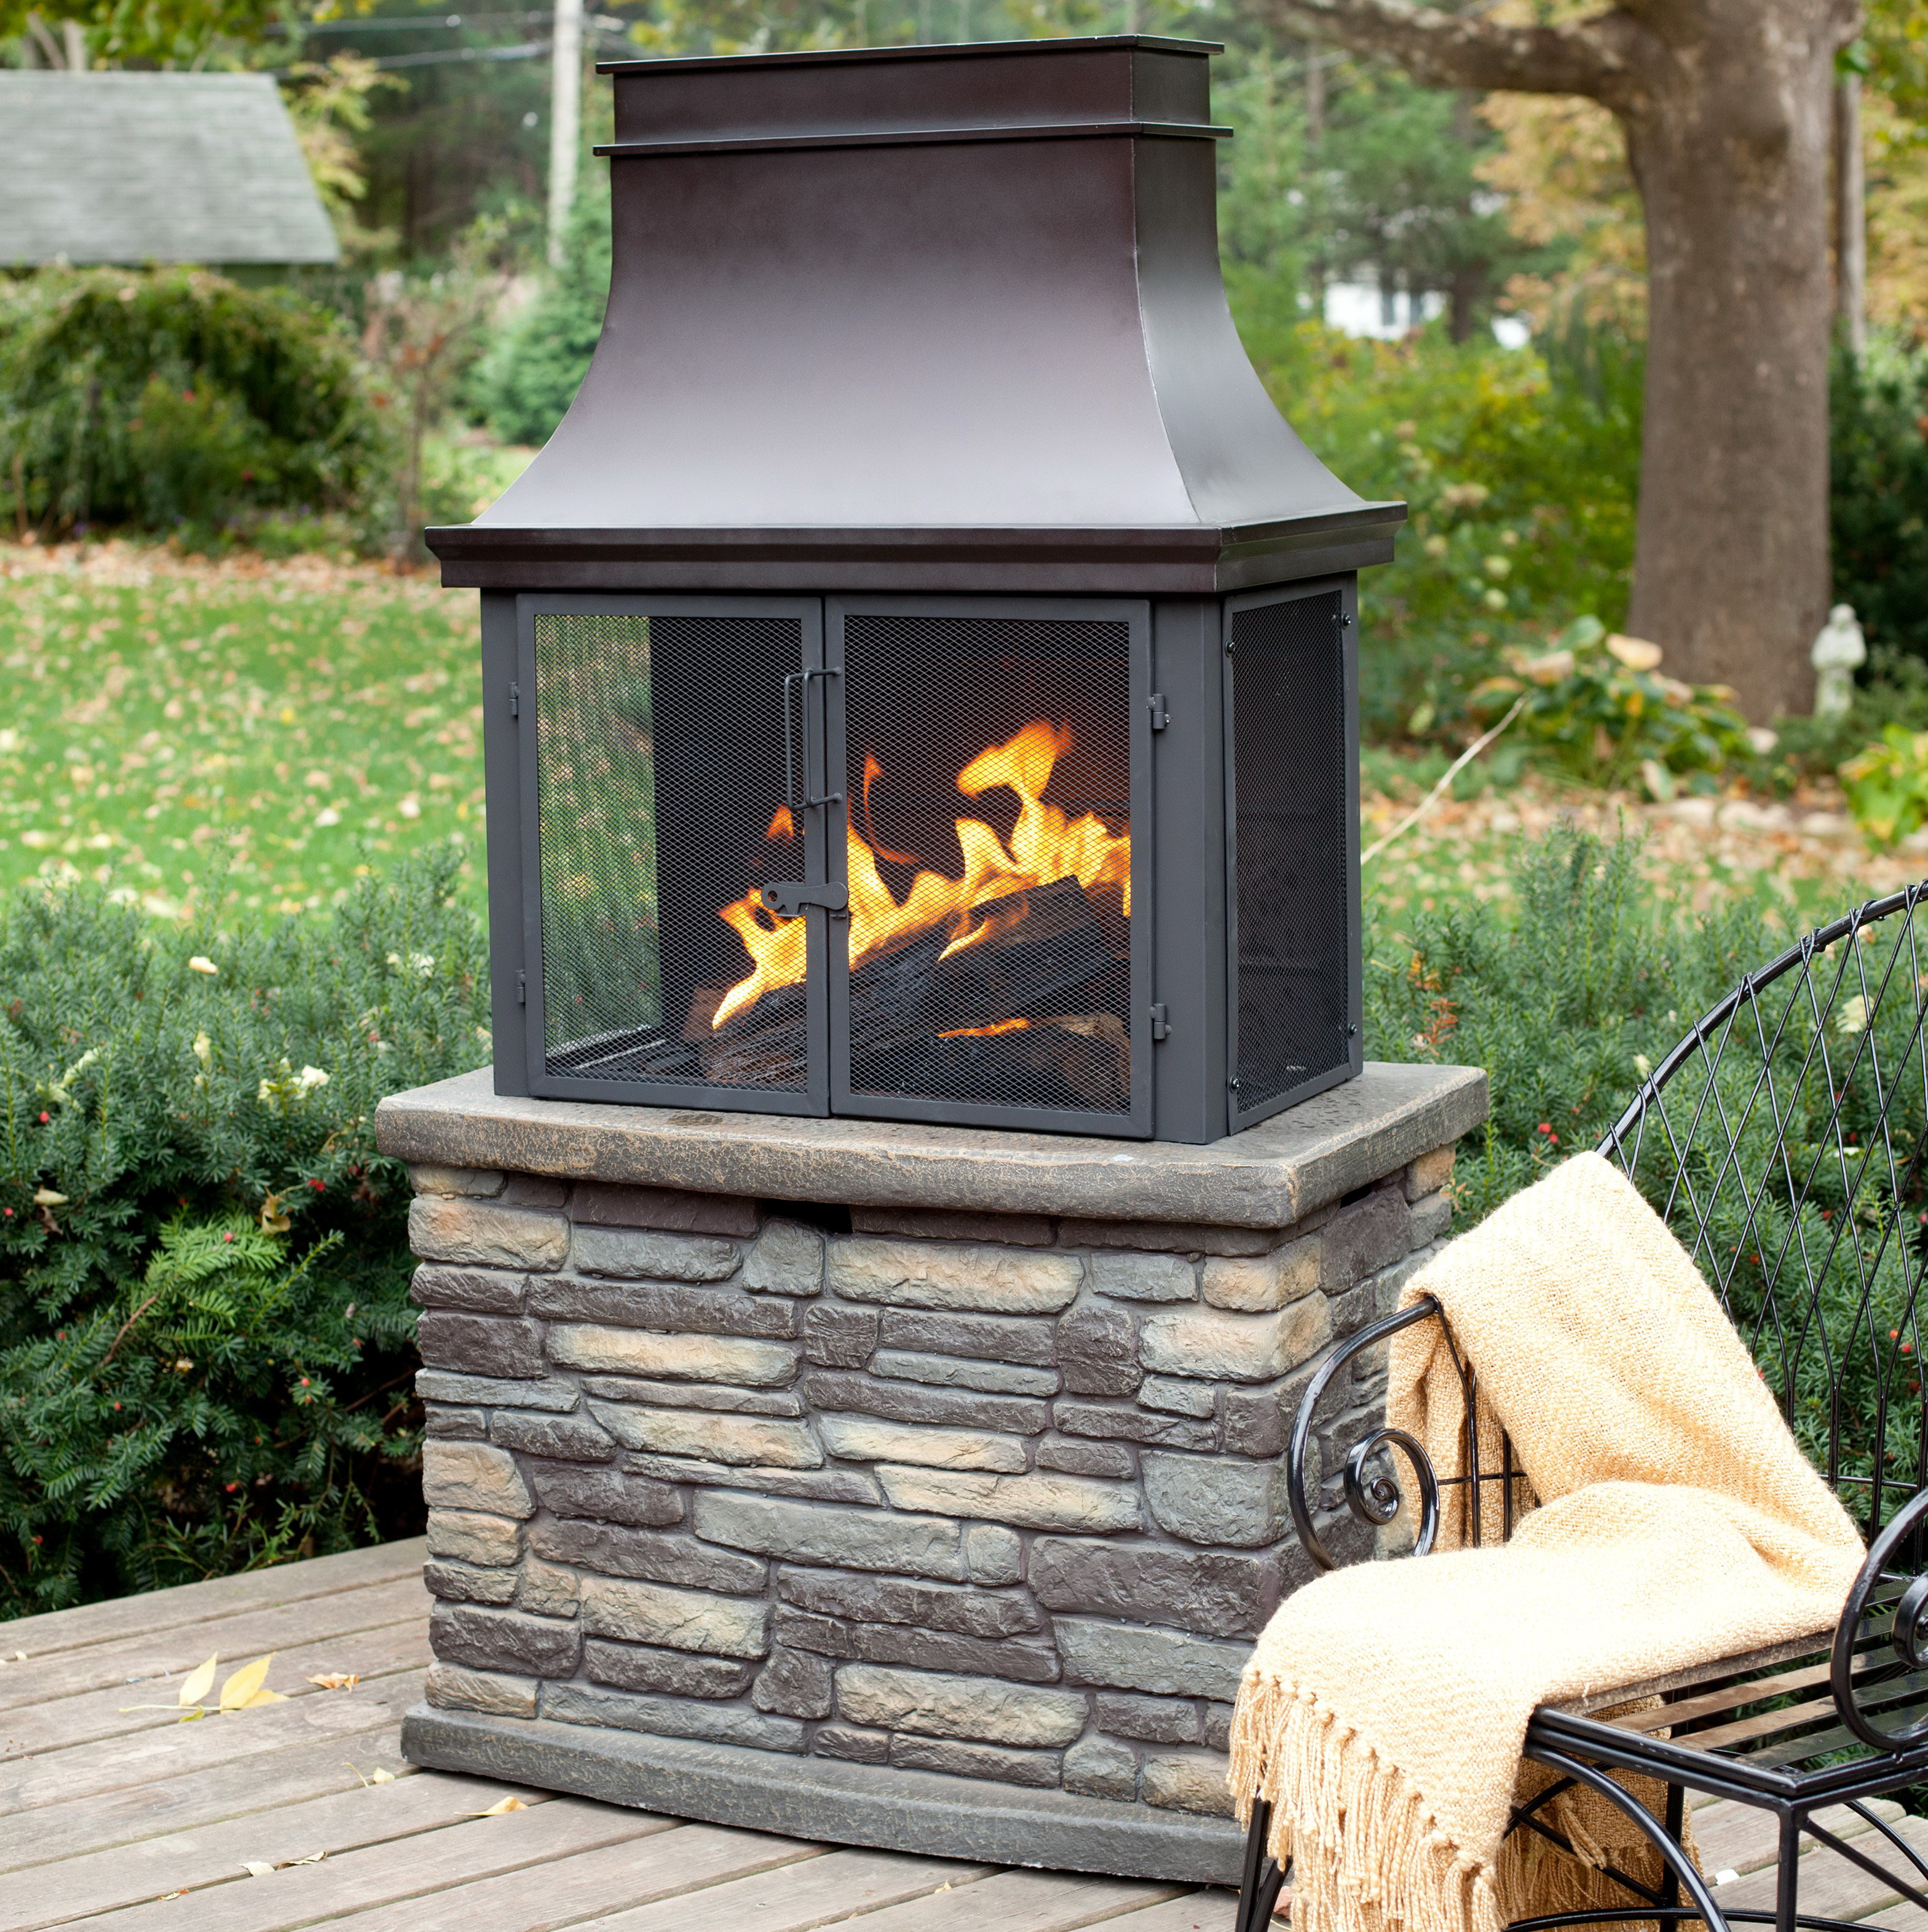 Precast outdoor fireplaces wood burning home design ideas for Wood burning stove for screened porch